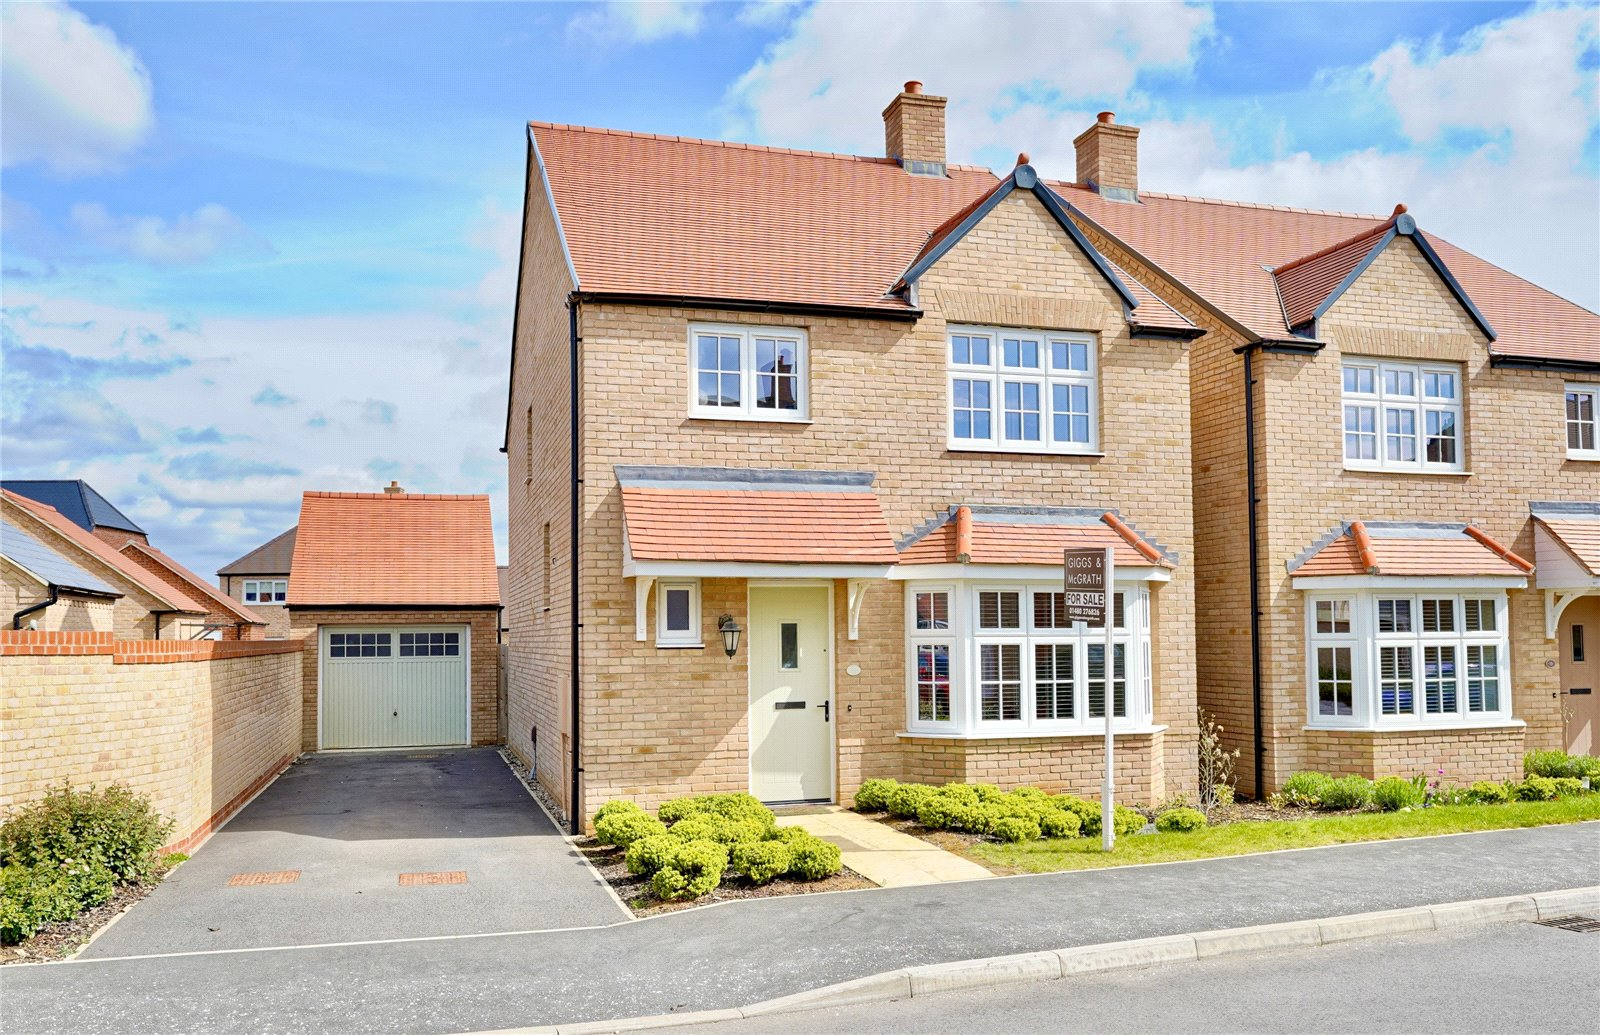 4 bed house for sale in Alconbury Weald, PE28 4BP - Property Image 1